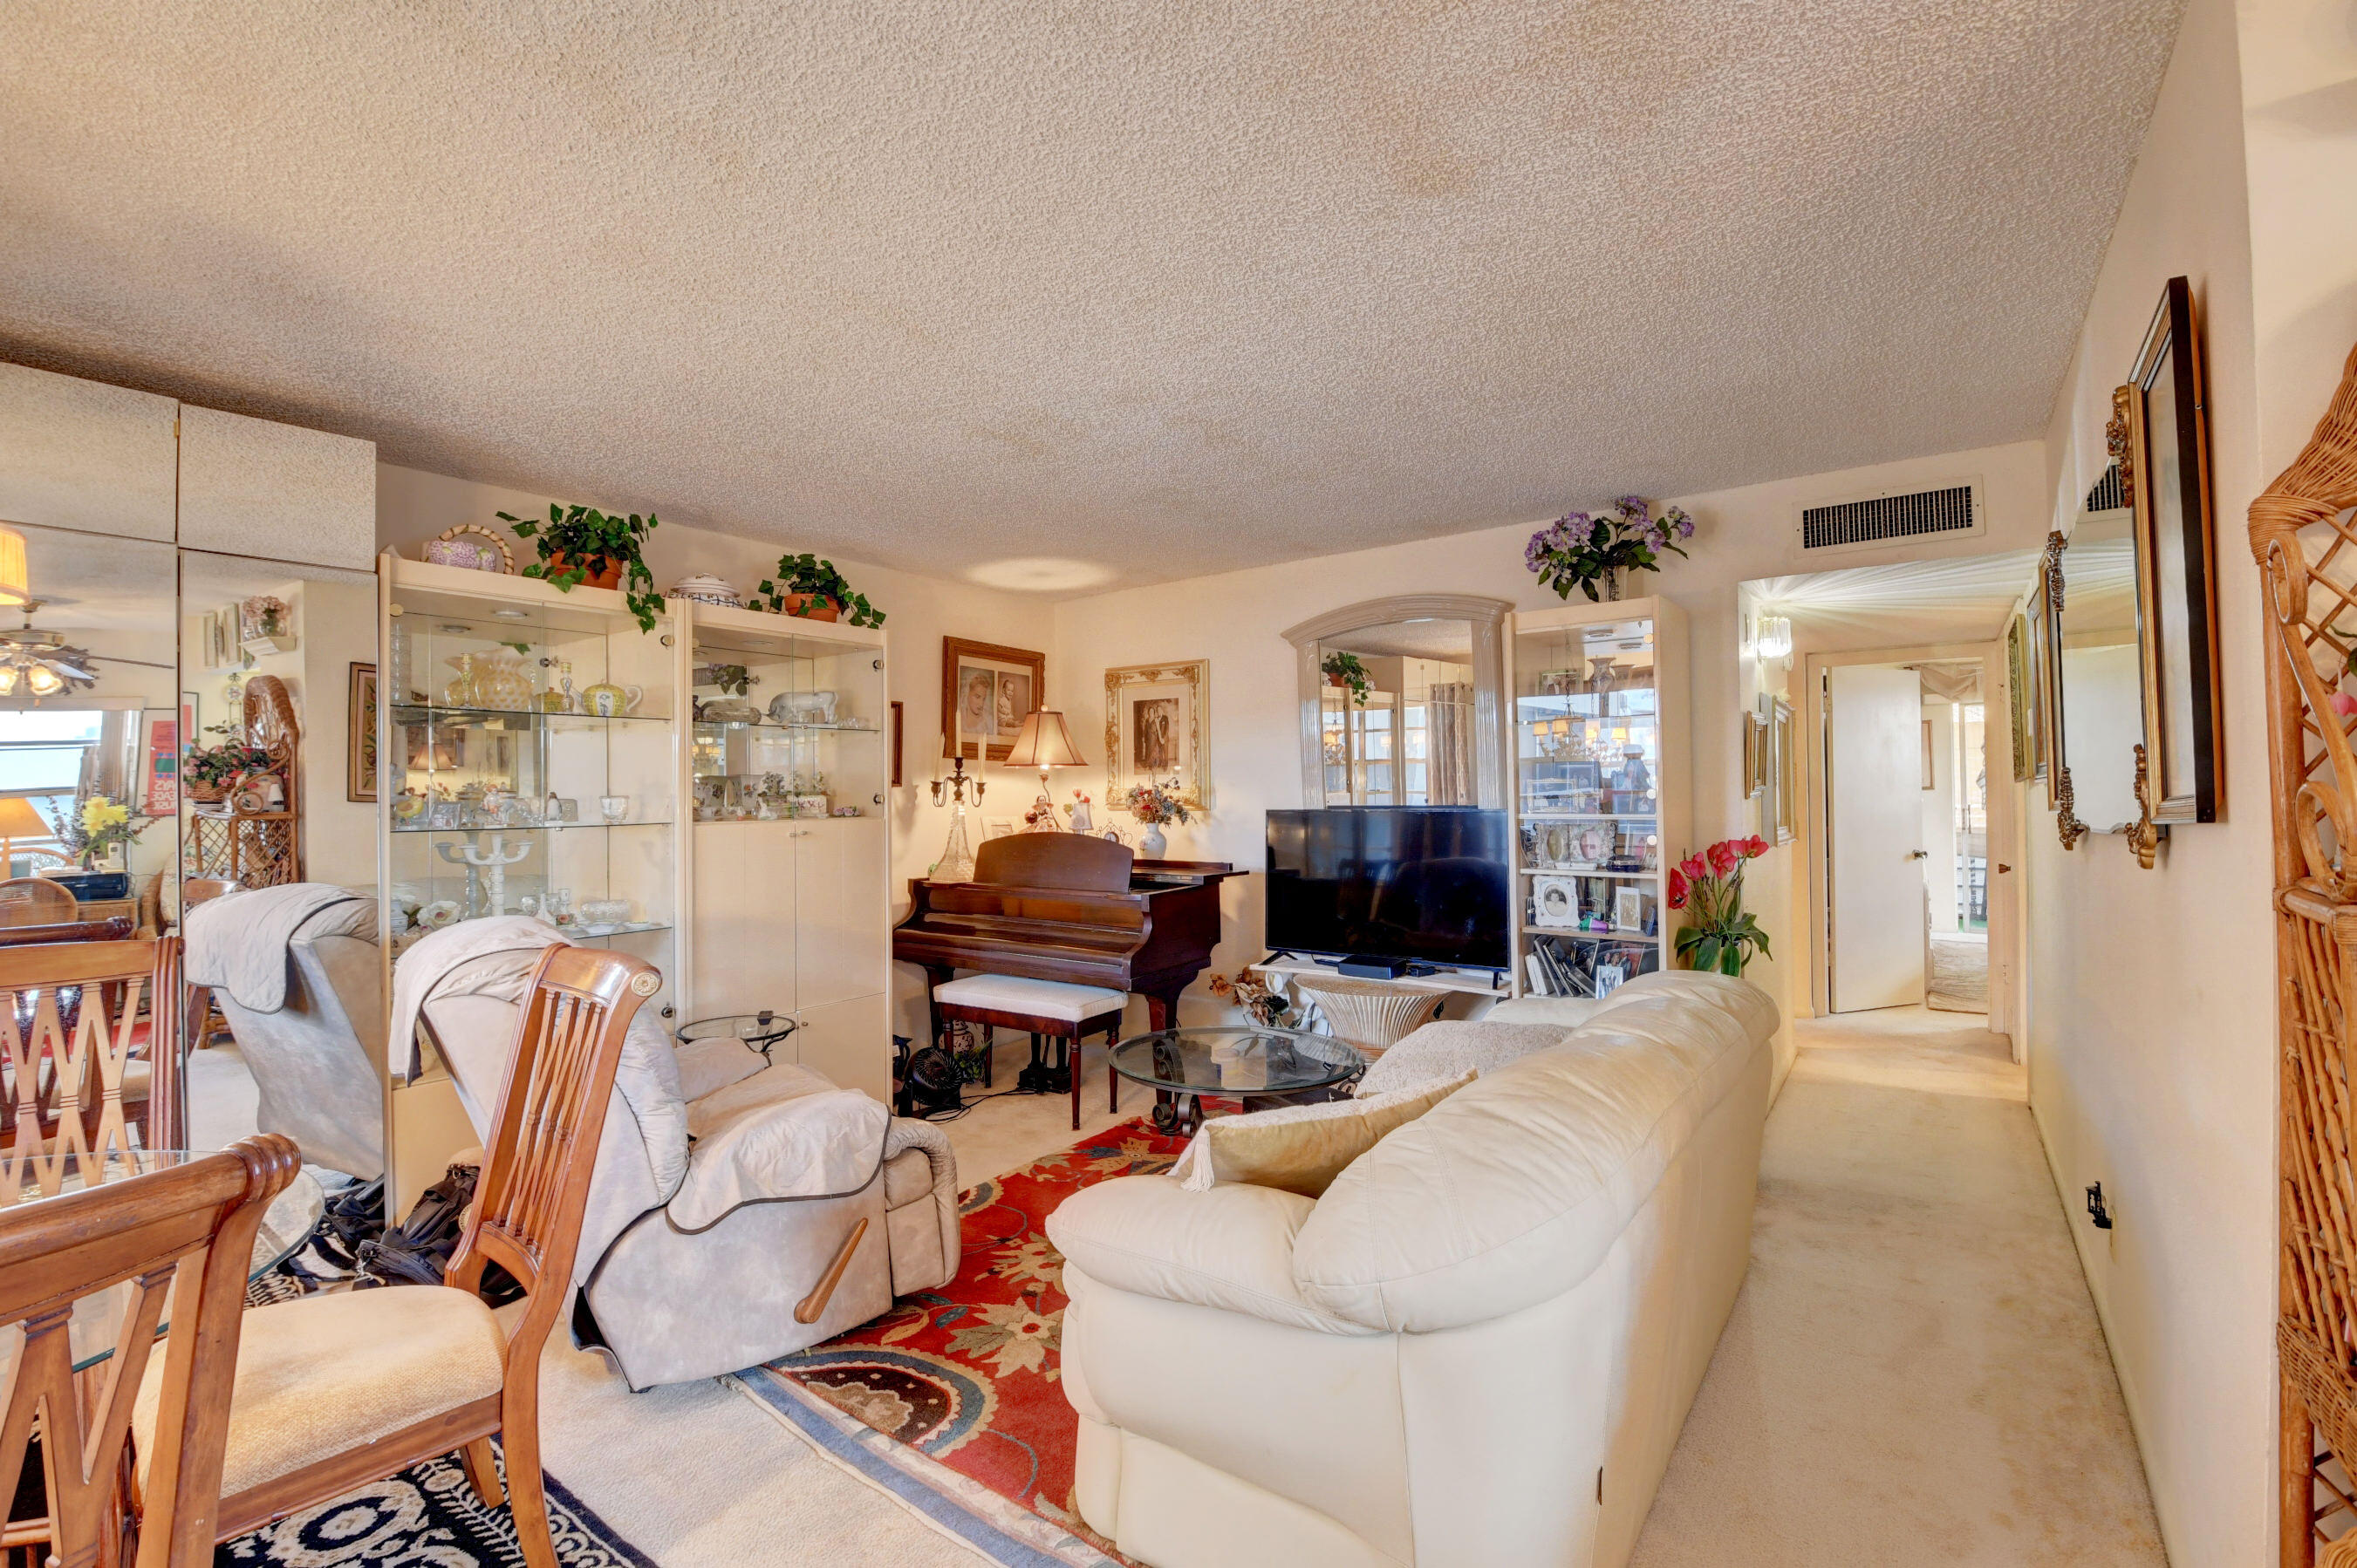 Corner two story Normandy 2 bedroom 2 bath unit with brand new A/C in 2021 and water heater in 2018.  The condo is offered fully furnished minus the personal items and includes a washer/dryer.  Schedule your showing today.